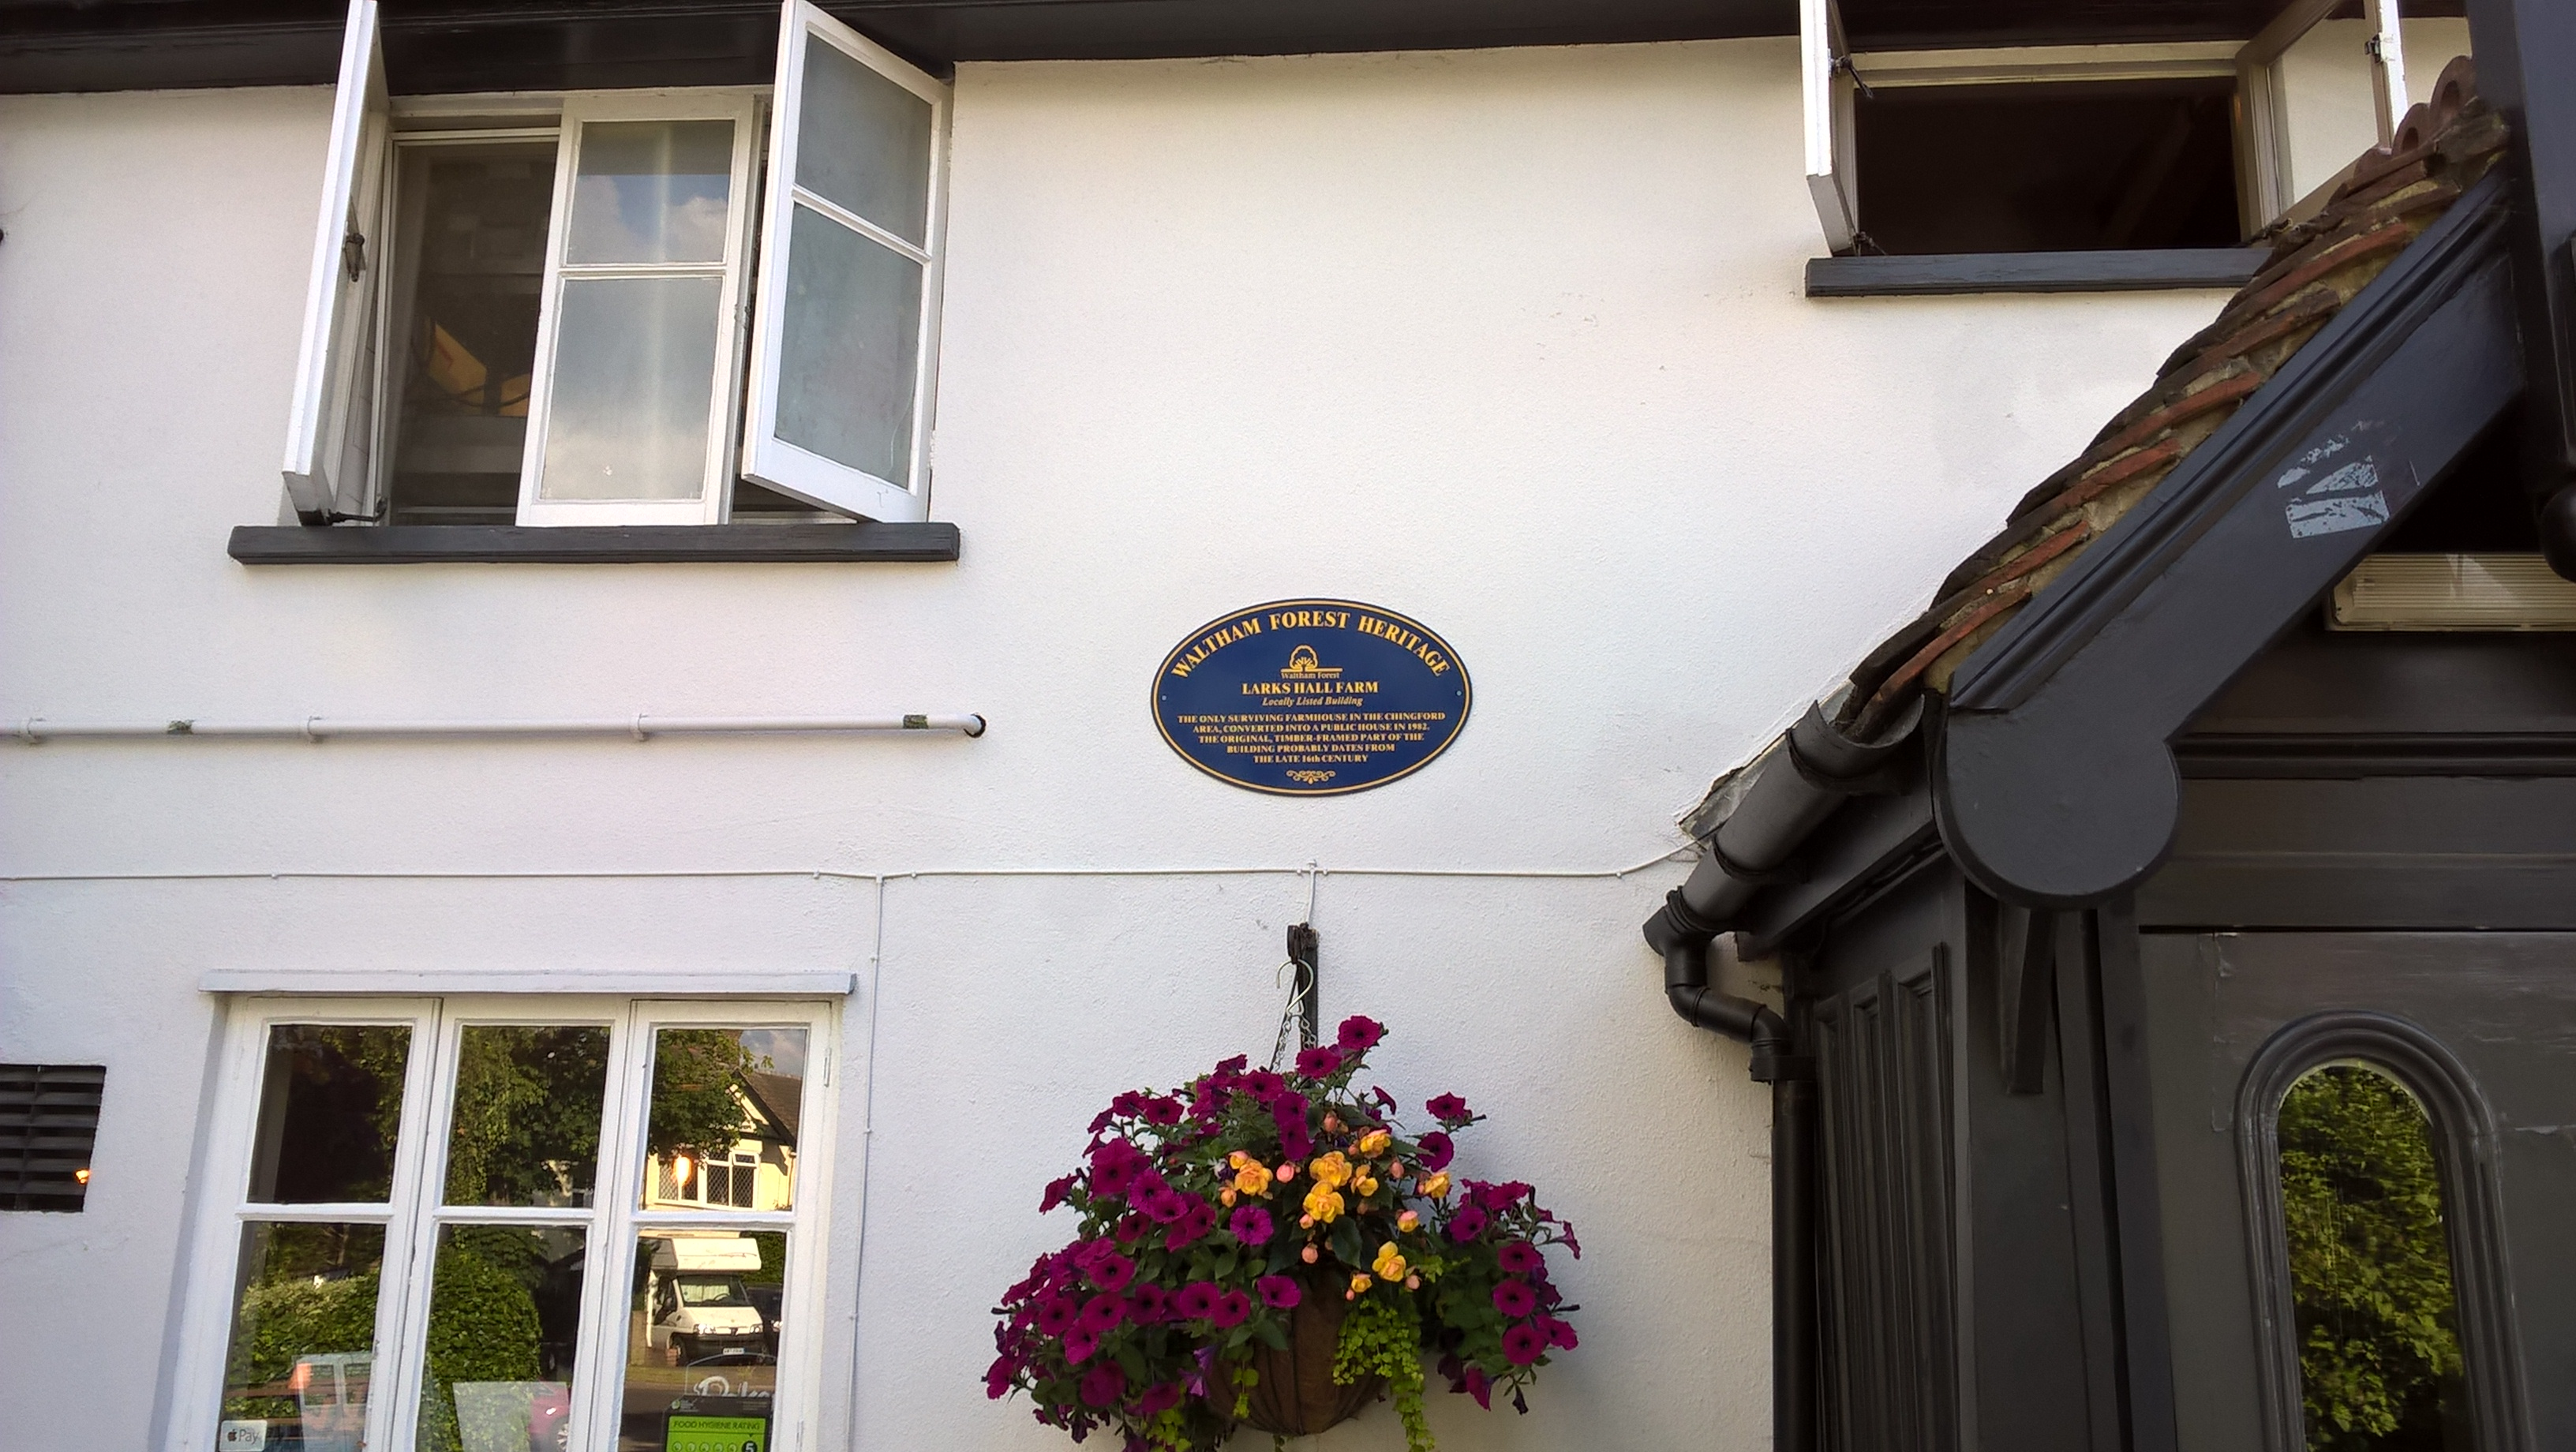 Larkshall Farm Blue Plaque - photo by Juliamaud